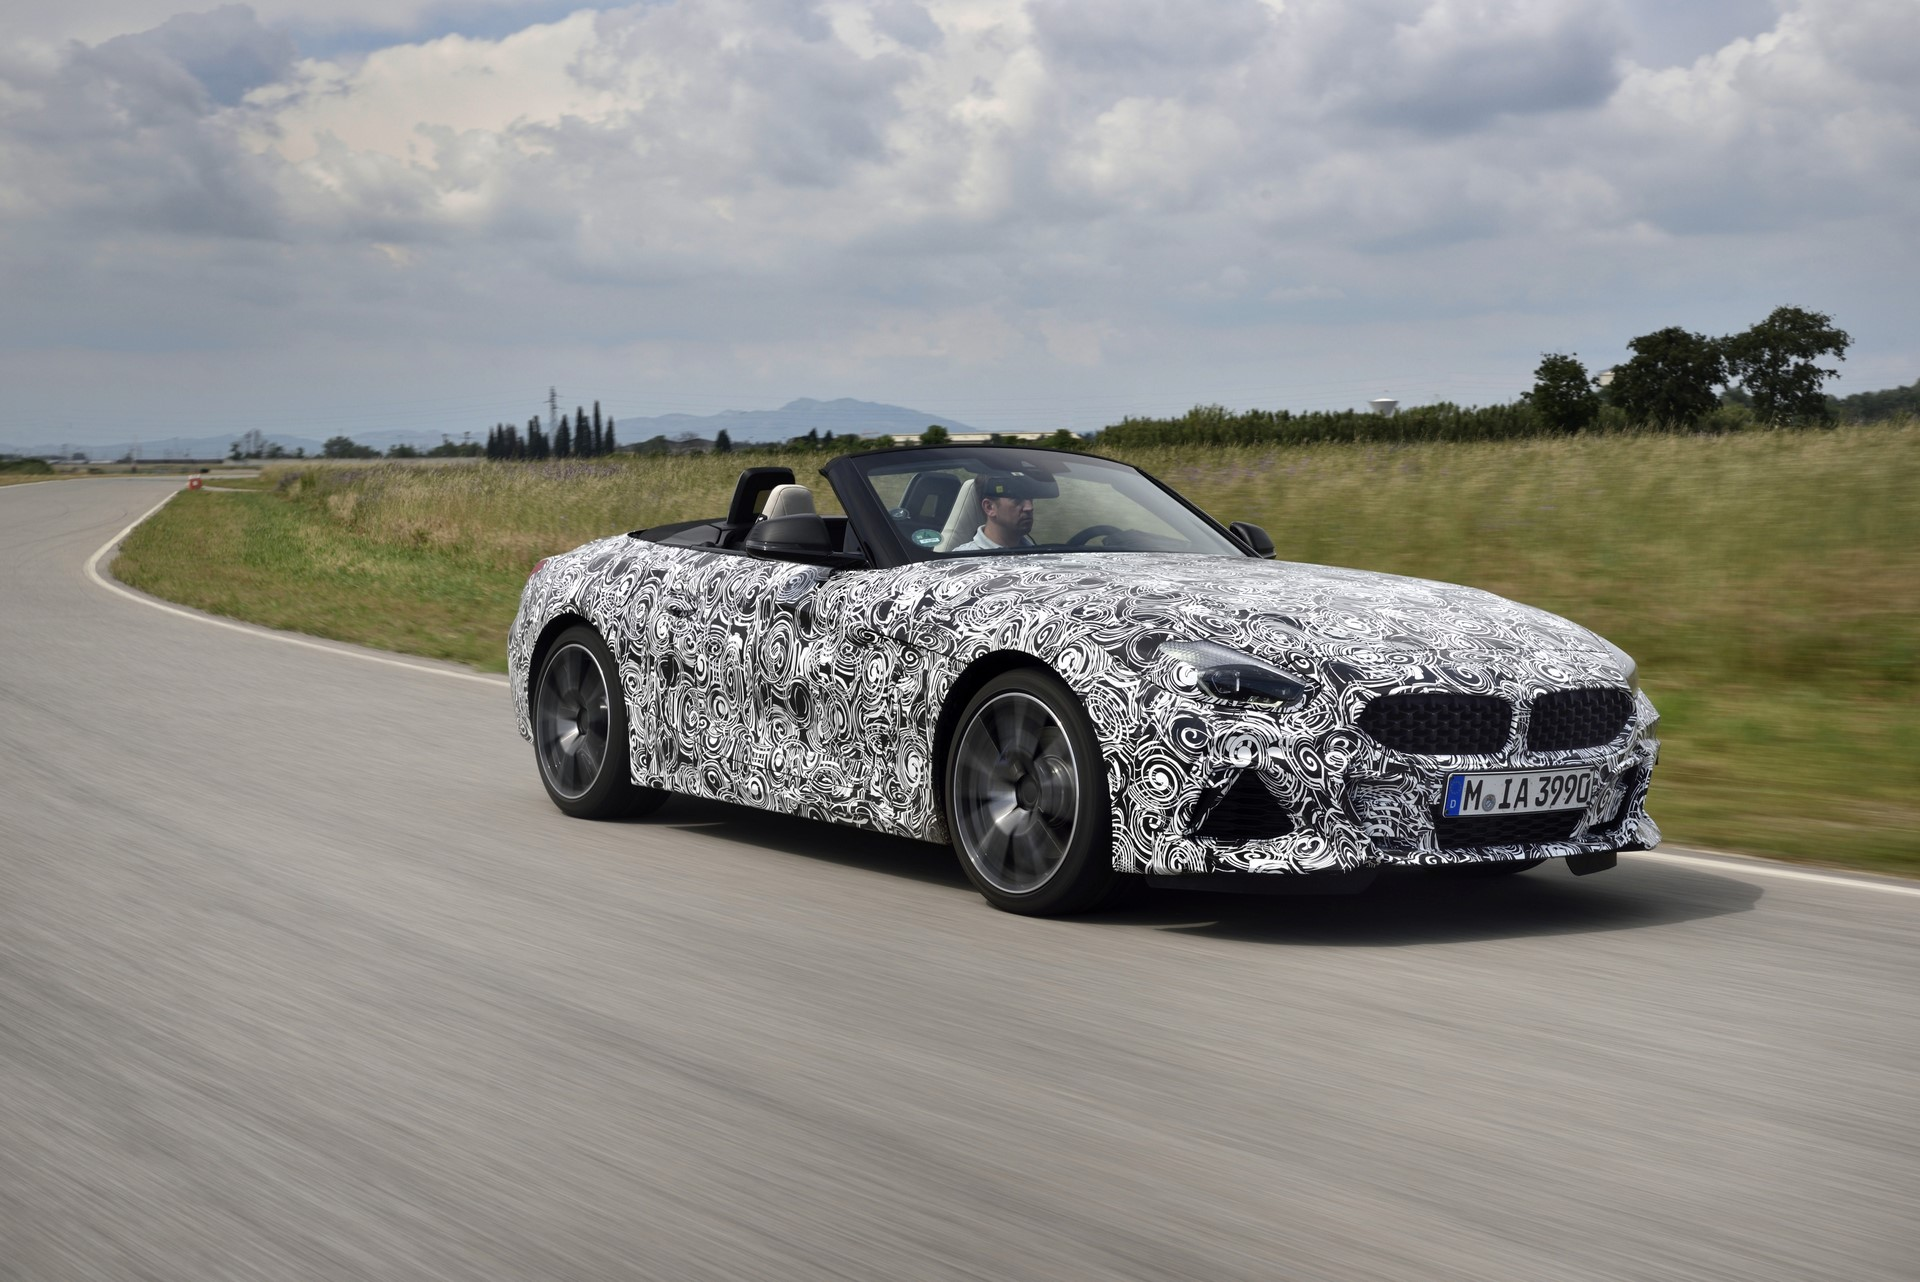 BMW Z4 M40i 2019 official spy photos (20)